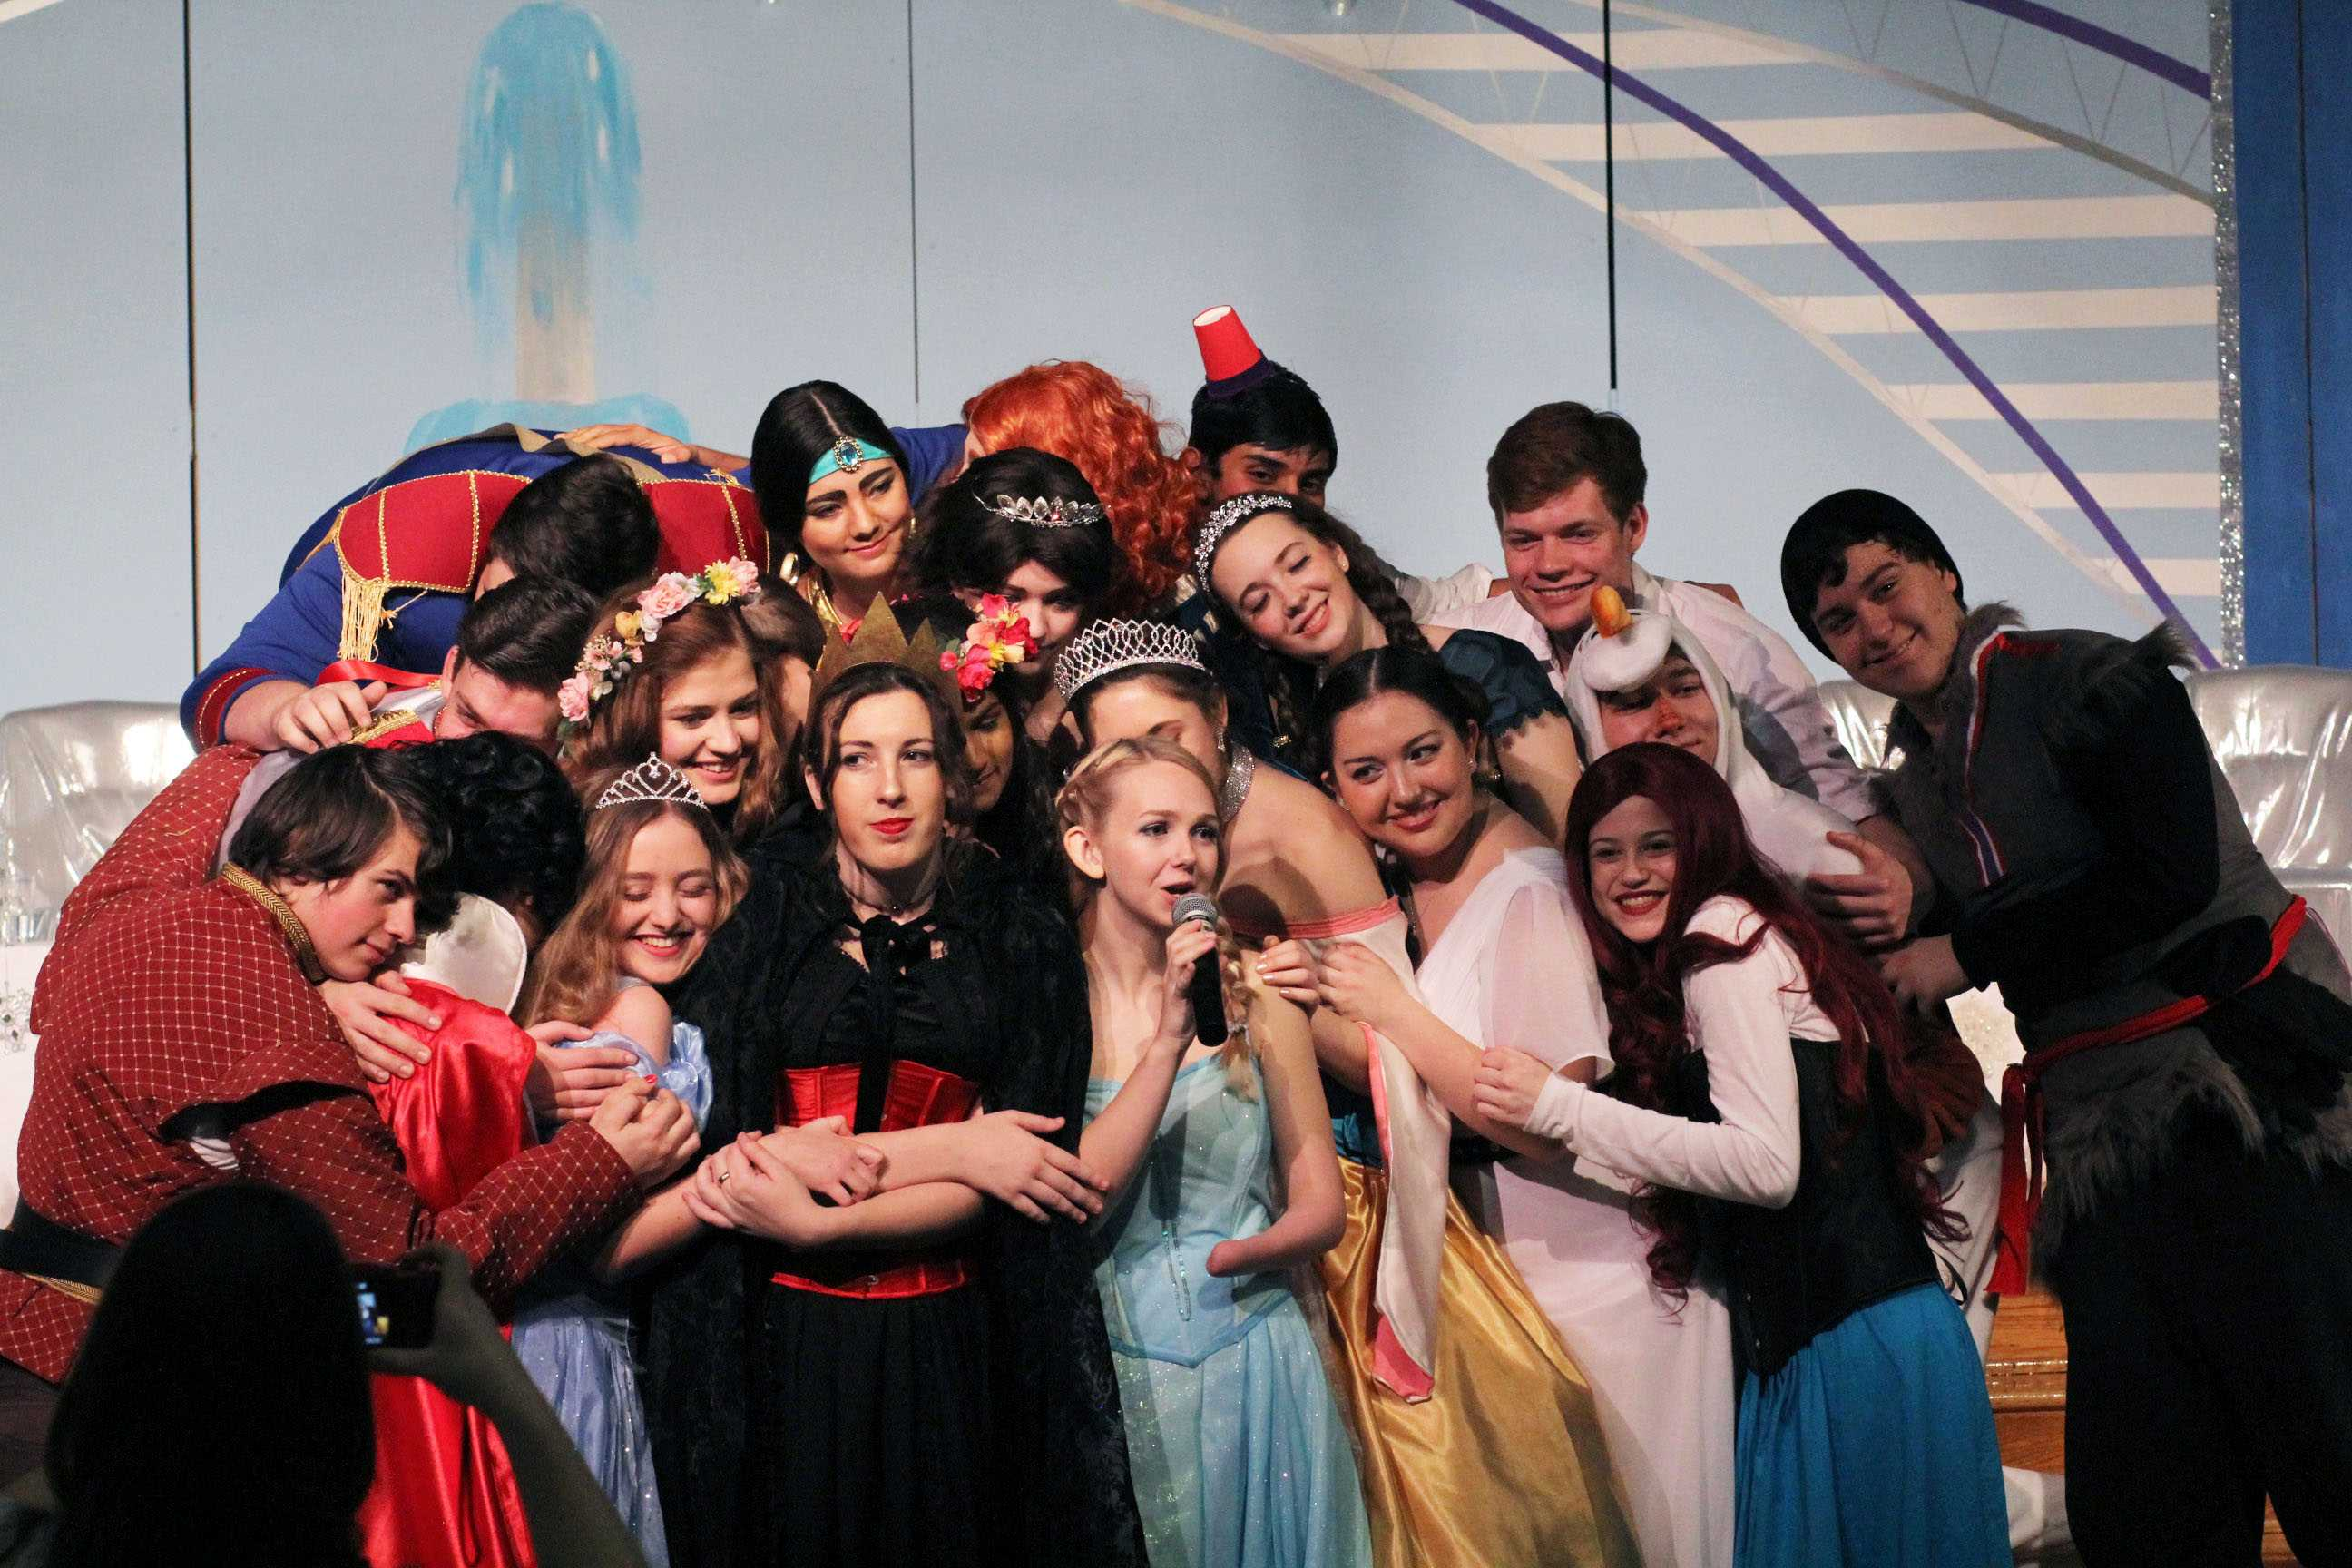 The cast of Princess Tea bringing it in for a group hug.